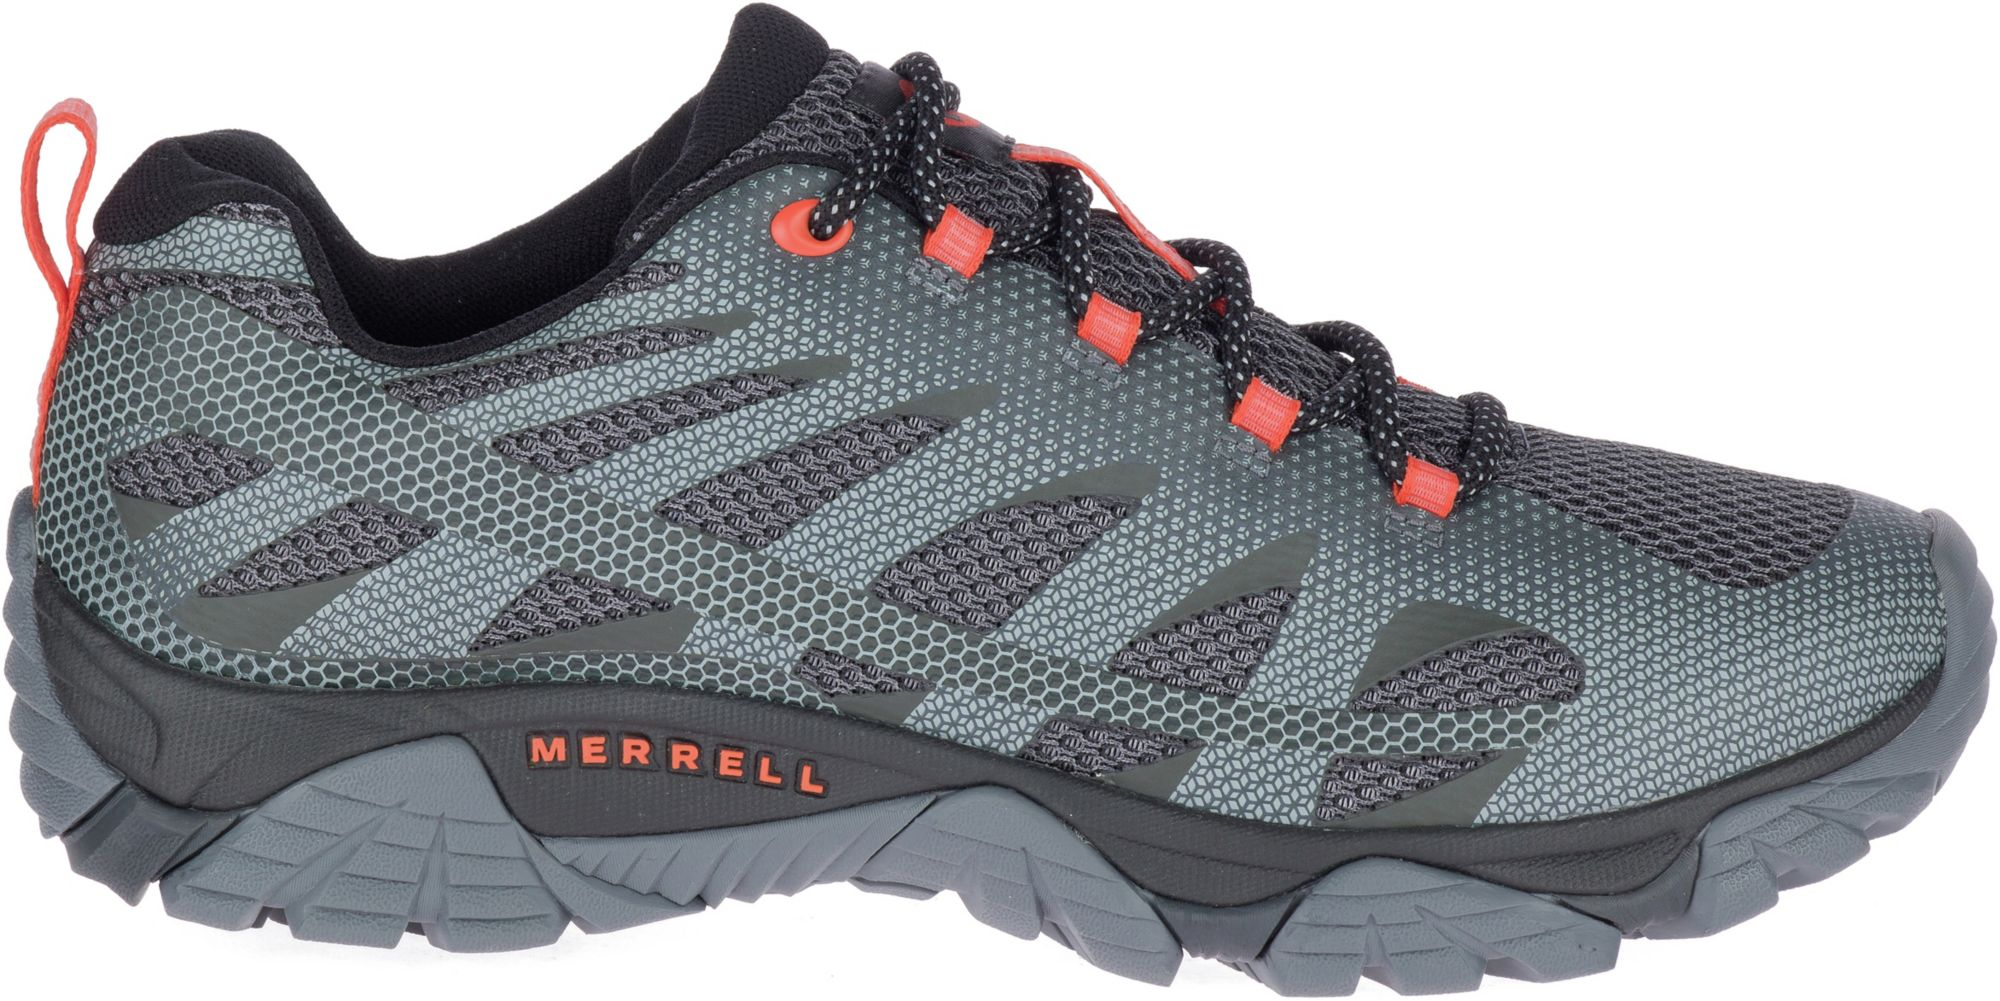 merrell moab edge hiking shoe review question